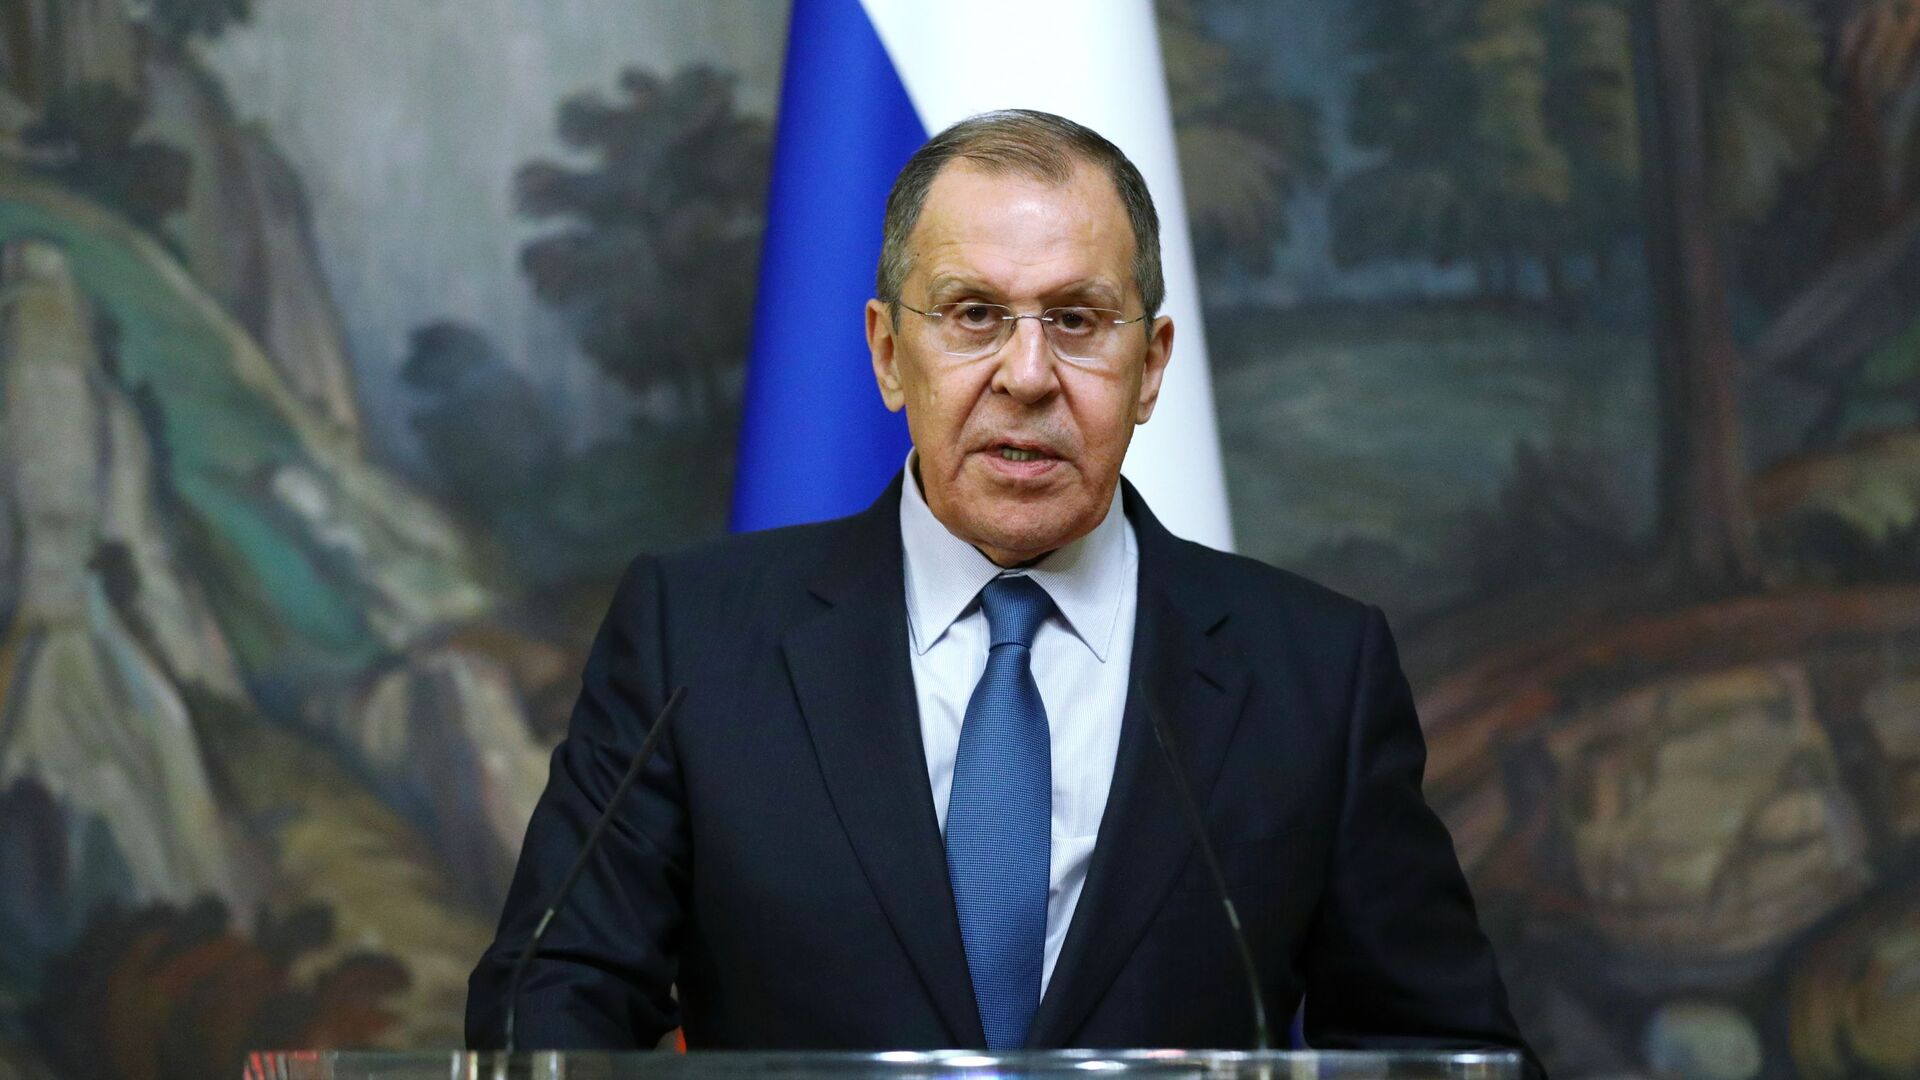 Russian Foreign Minister Sergey Lavrov delivers a joint statement after trilateral talks between Russia, Armenia and Azerbaijan over Nagorno-Karabakh ceasefire, 10 October 2020 - Sputnik Italia, 1920, 24.08.2021